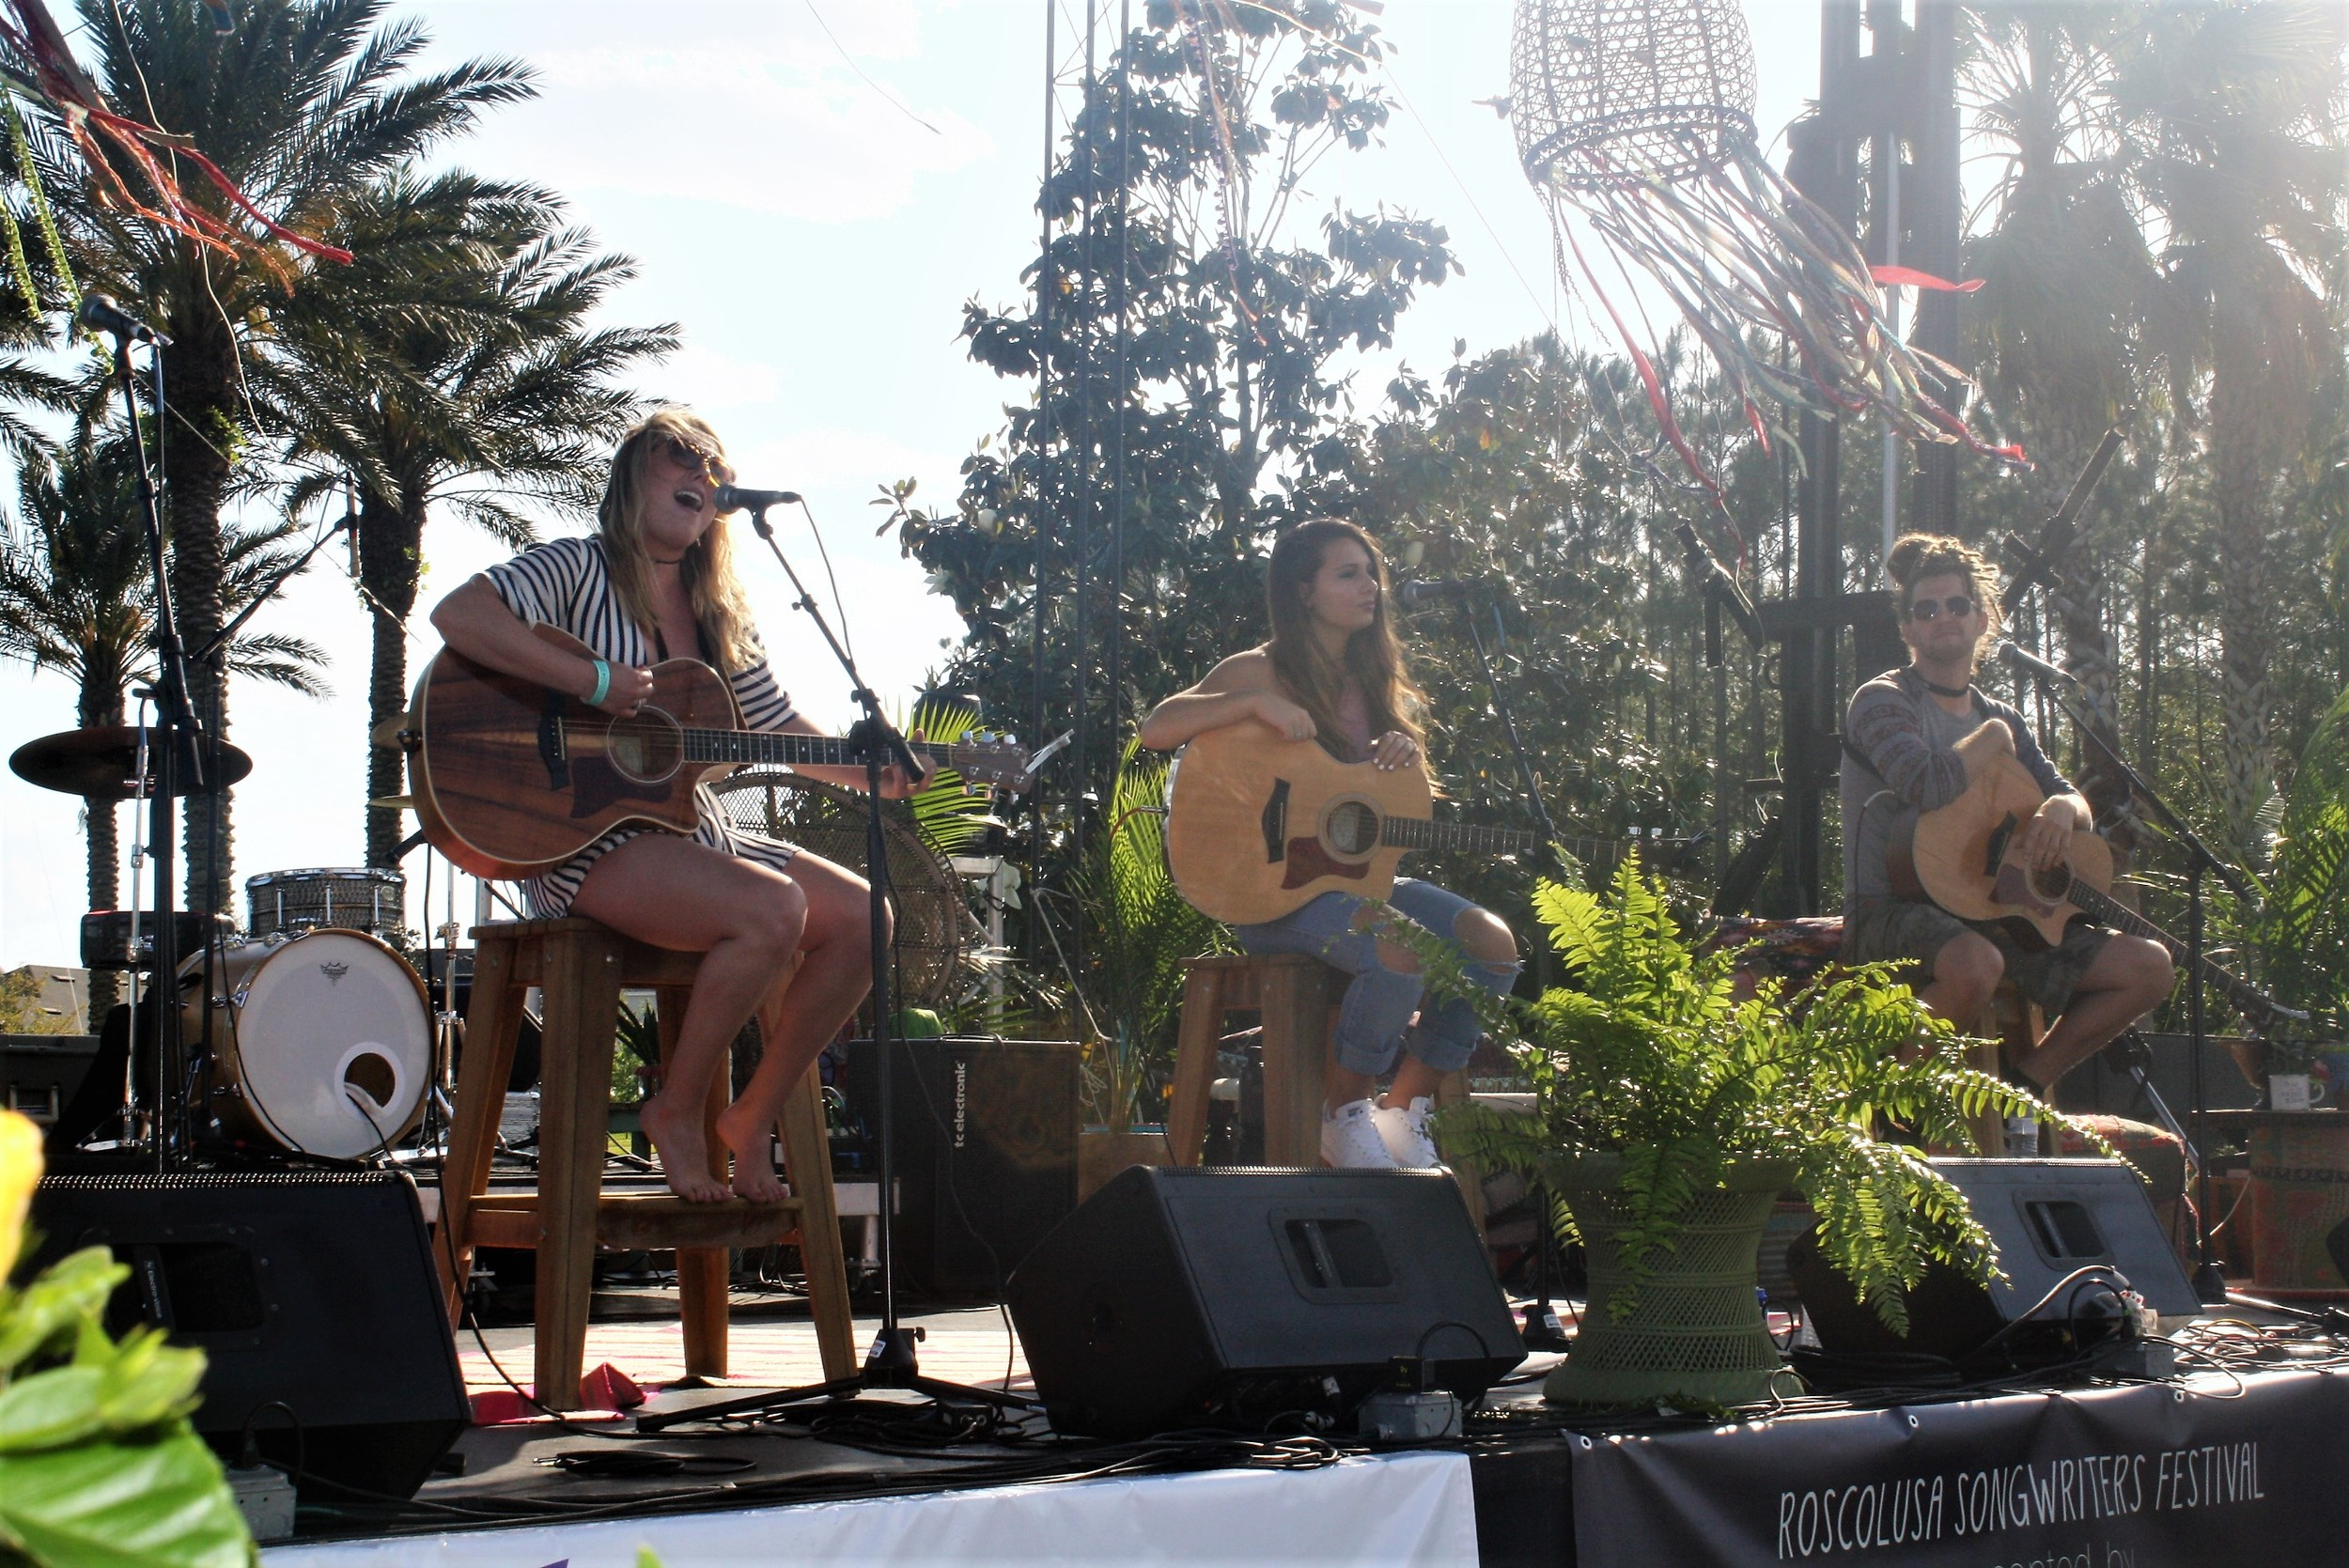 Casey Weston, Kaylee Rose and Tylor Bailey perform at the 6th Annual Roscolusa Songwriters Festival, held April 22 in Nocatee.